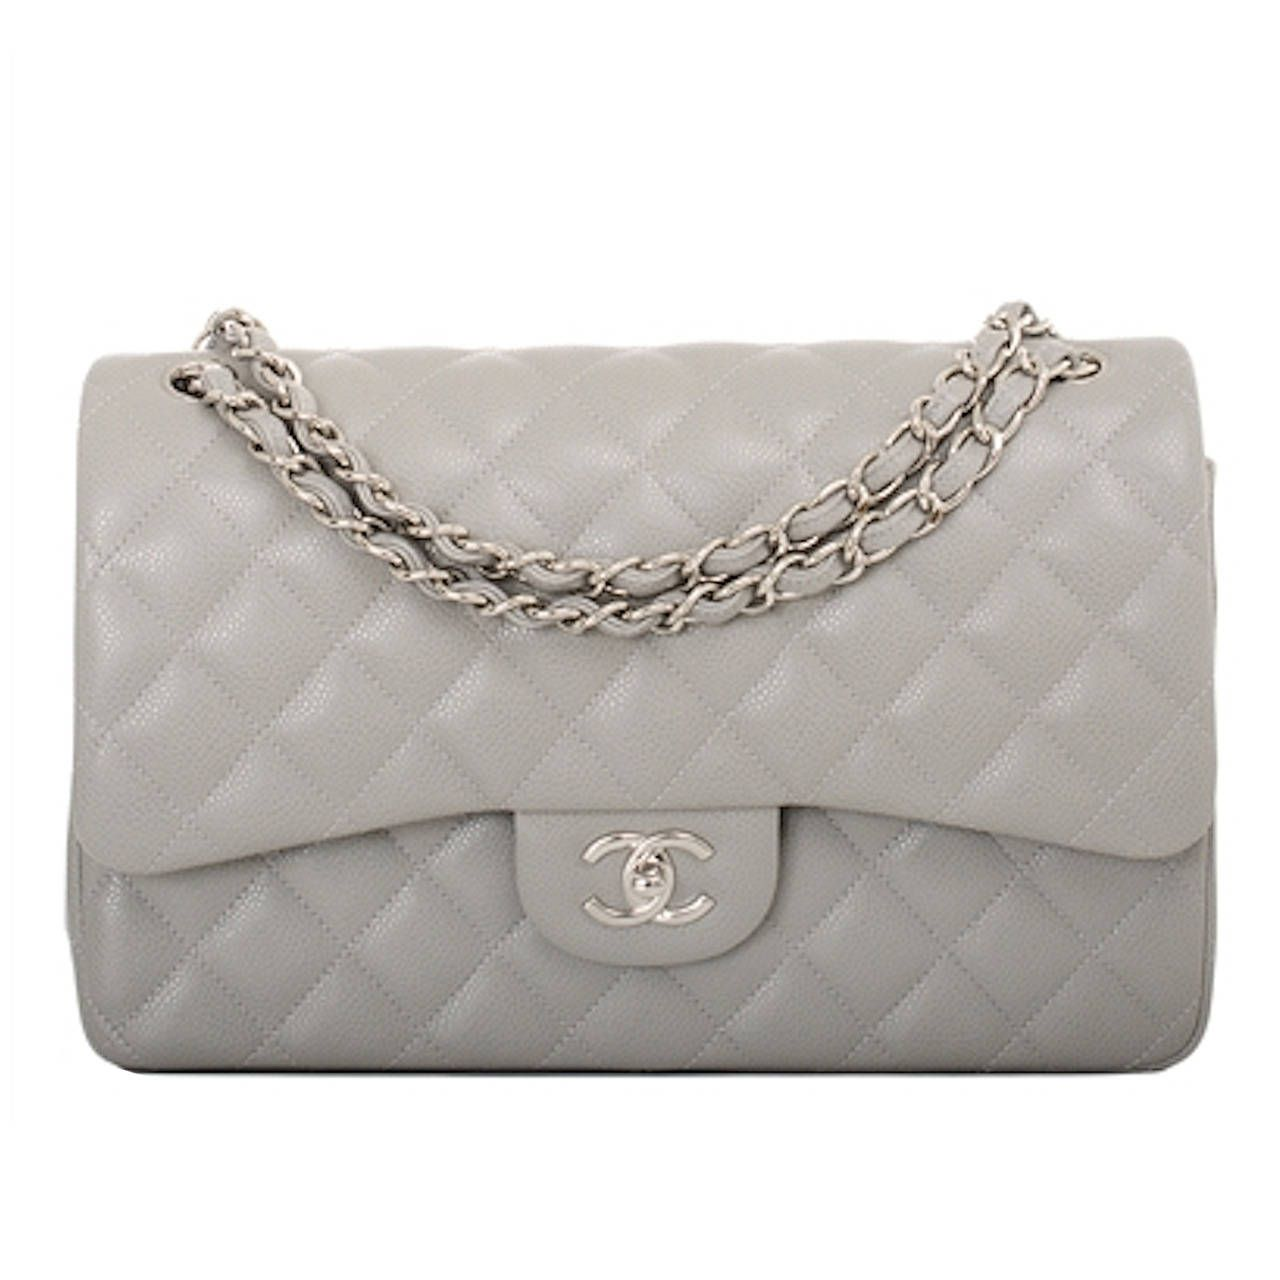 8f0ce1d3d3b92a Chanel Light Grey Quilted Caviar Jumbo Classic Double Flap Bag | From a  collection of rare